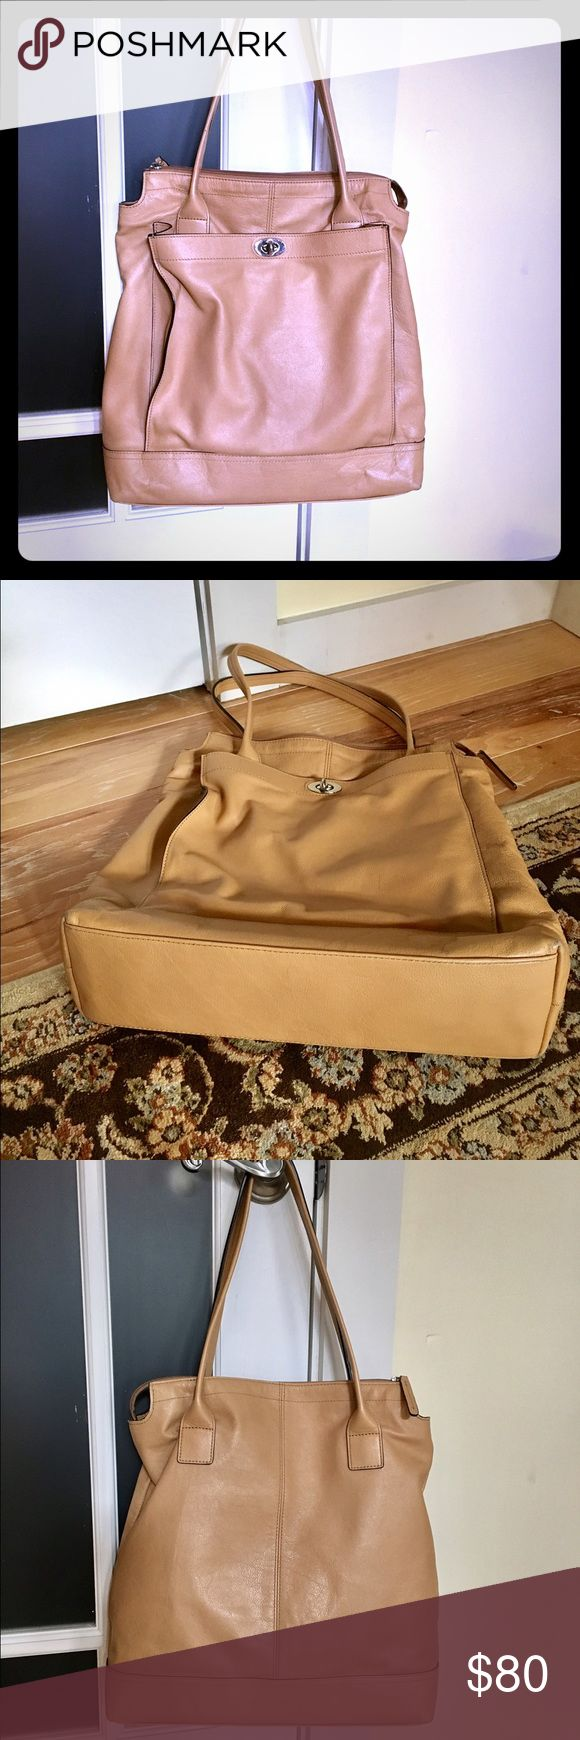 Banana Republic Leather Tote Bag / Purse. Banana Republic Leather Tote Bag / Purse.  Tan color, soft leather in excellent condition.  Large tote with 1 zipper pocket and 2 other pockets inside to keep items organized. Banana Republic Bags Totes